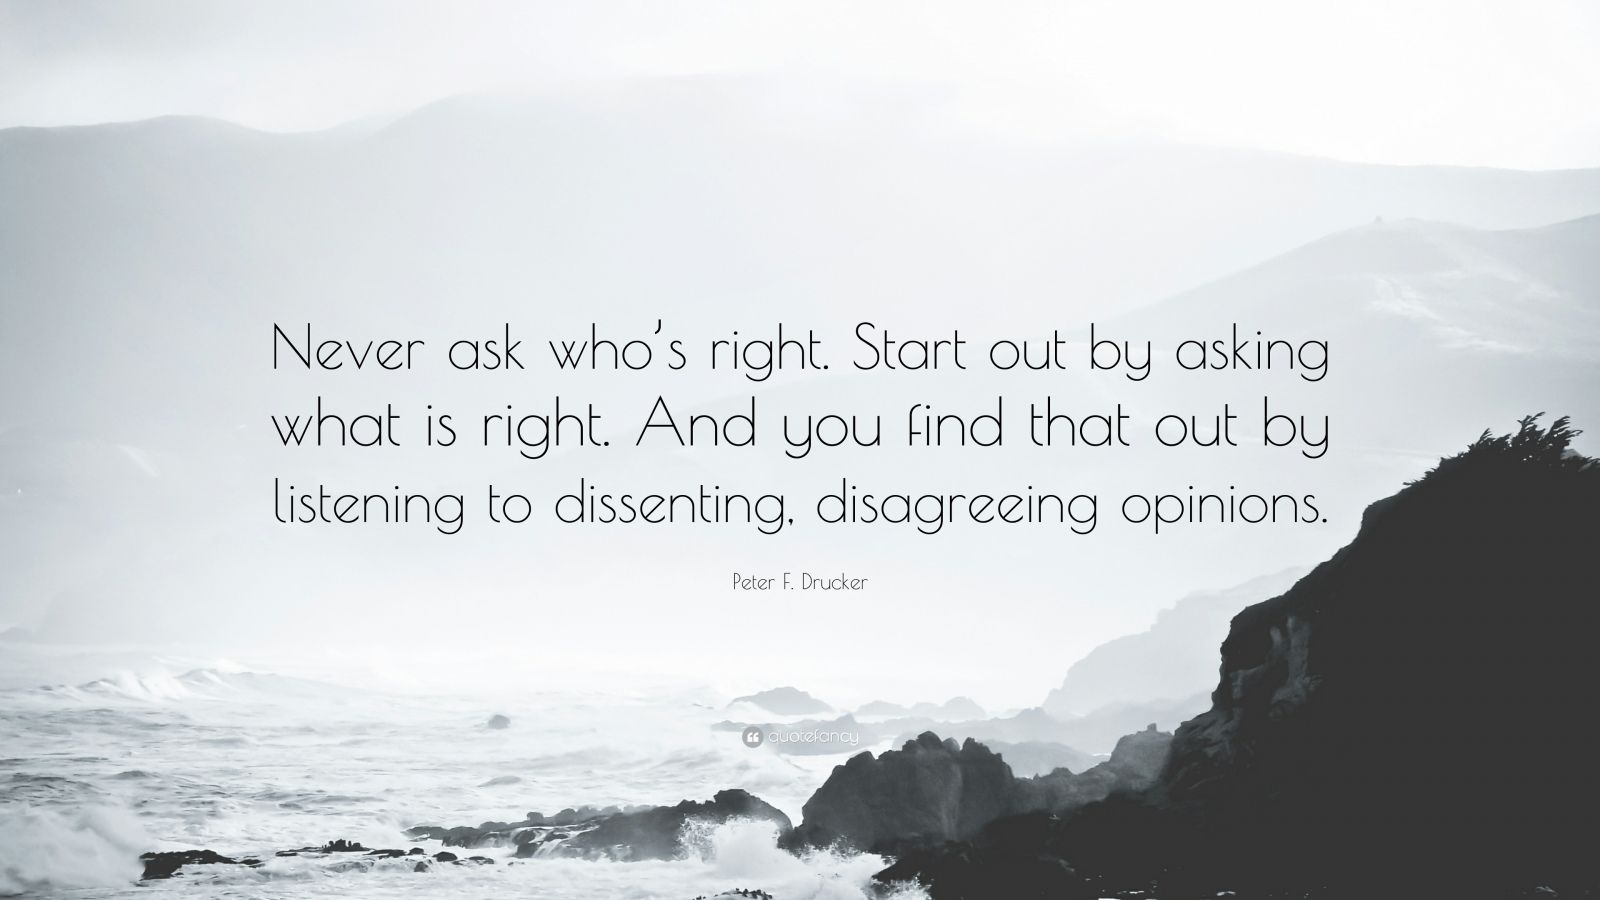 "Peter F. Drucker Quote: ""Never ask who's right. Start out by asking what is right. And you find that out by listening to dissenting, disagreeing opinions."""